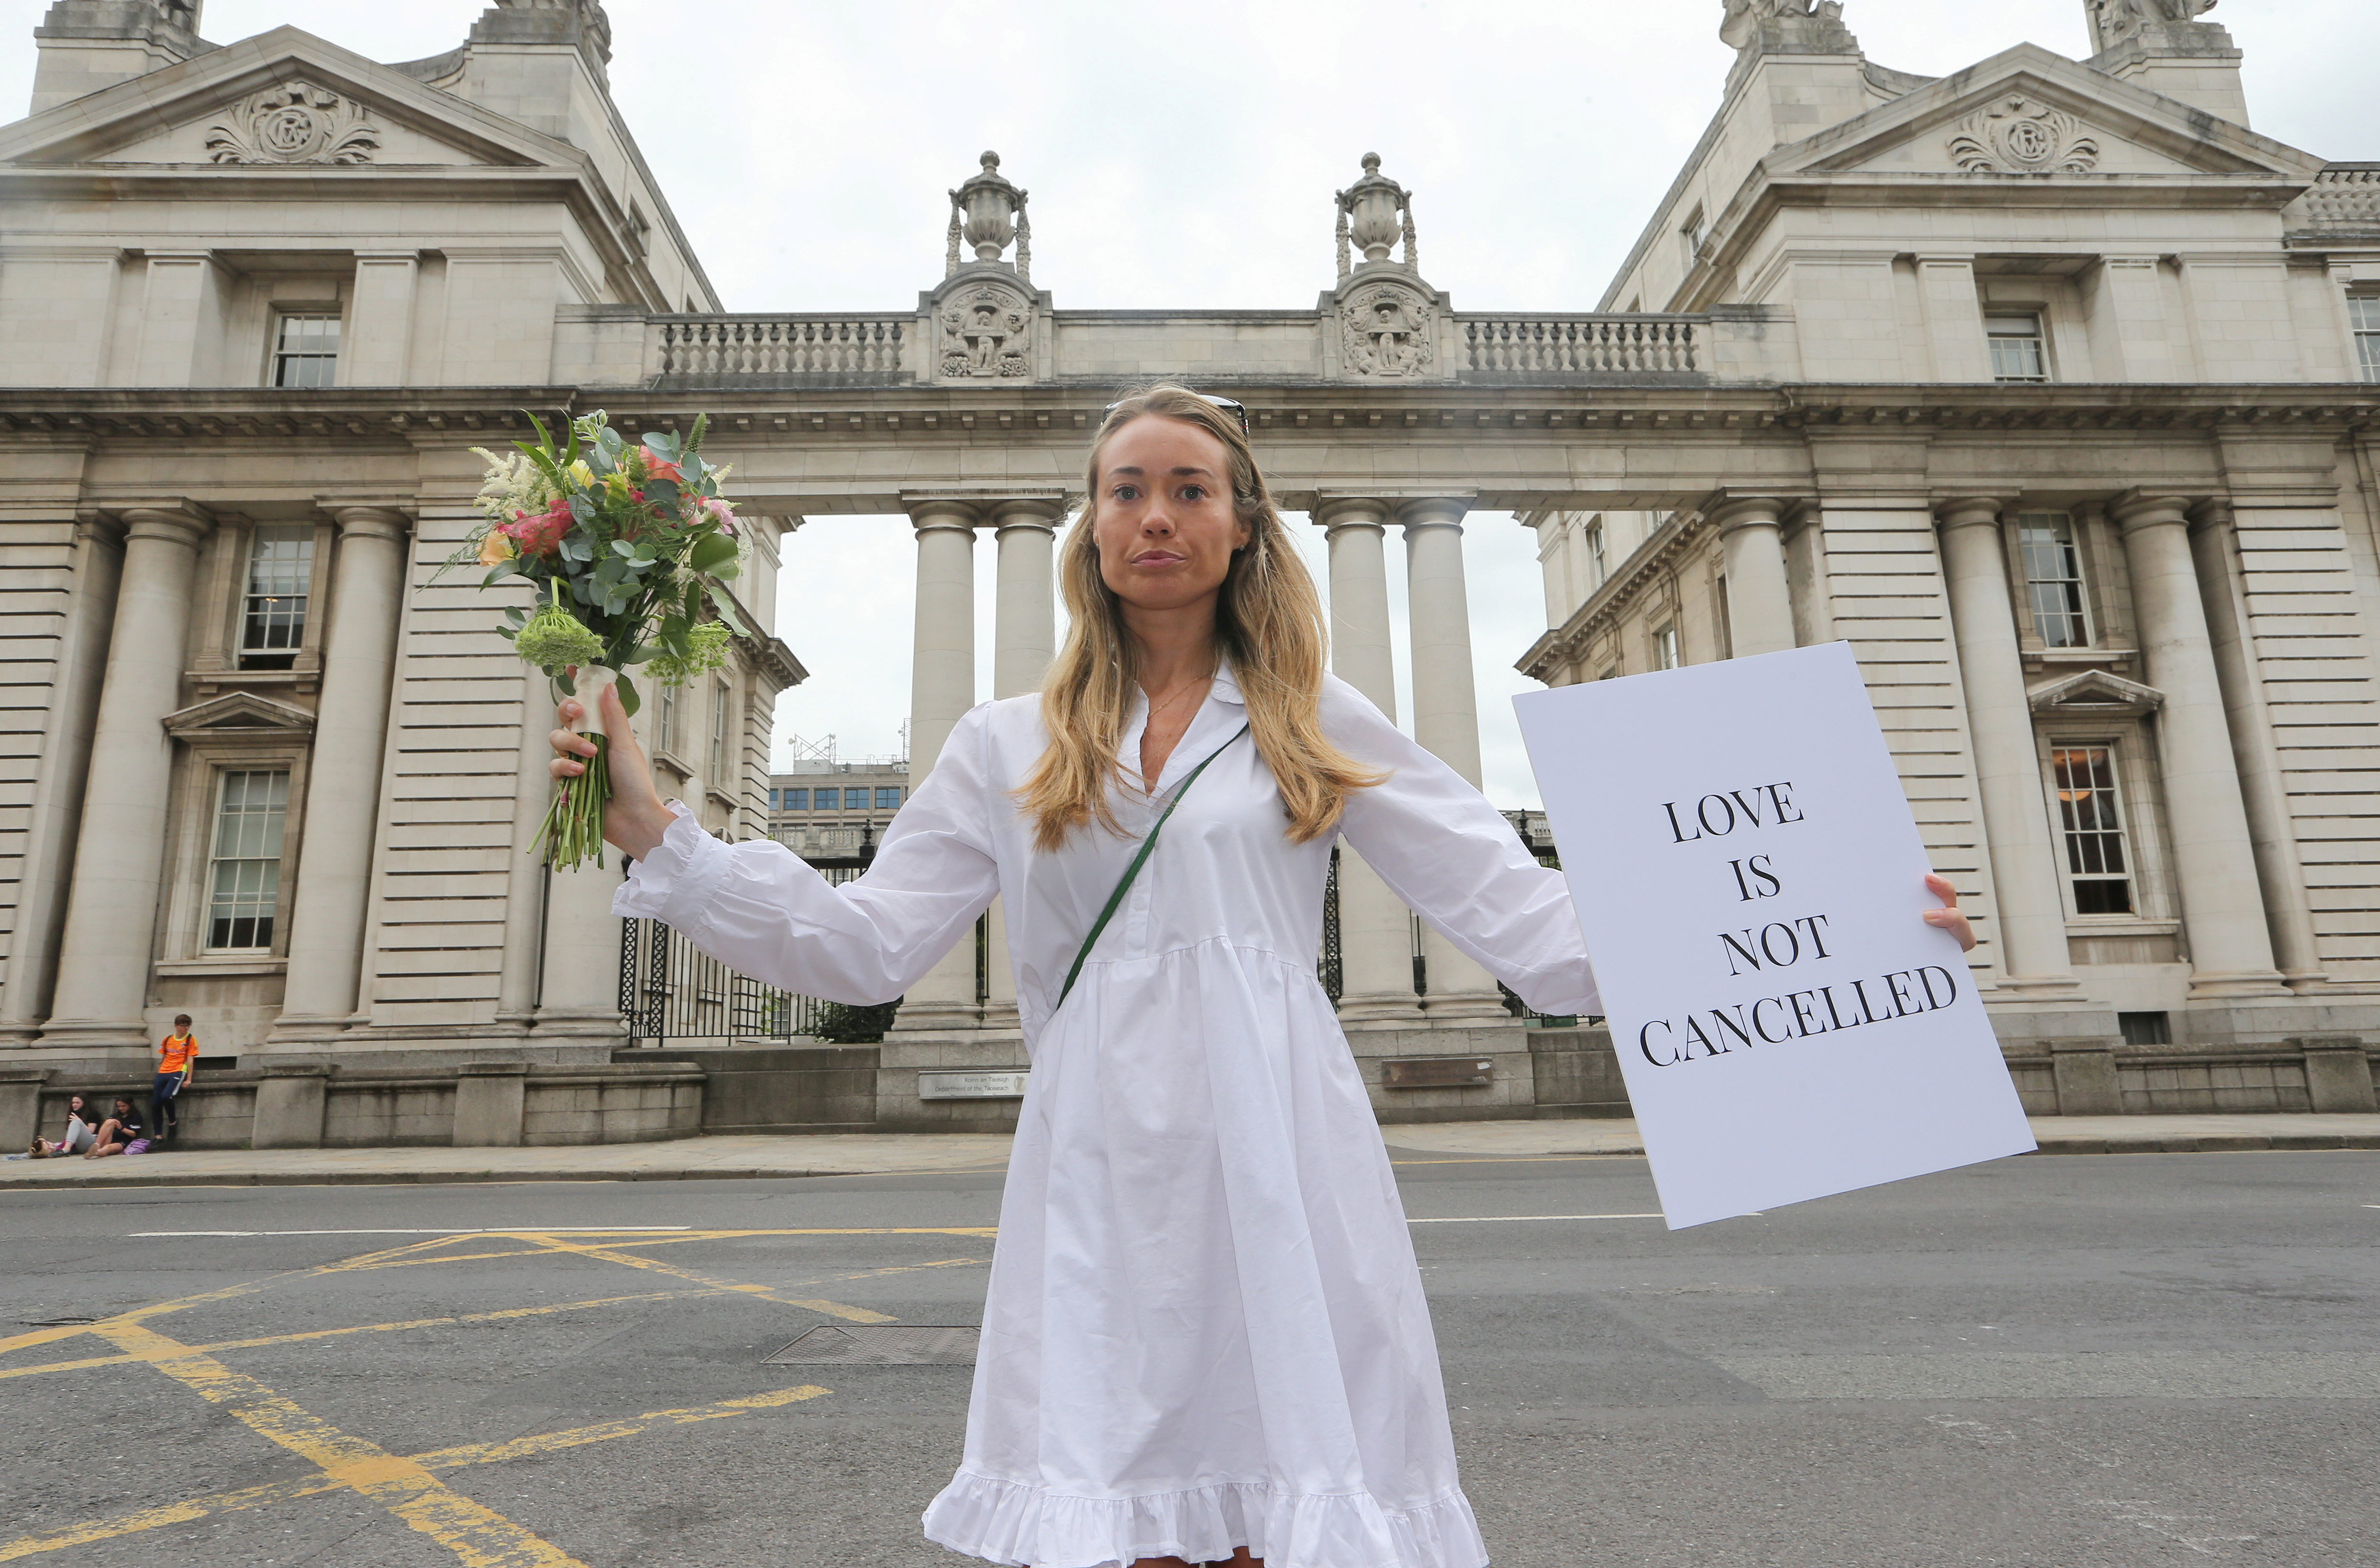 Orla O'Huadaigh holds up a sign at a protest march to Government Buildings in a bid to allow up to 100 guests to attend weddings this year in Dublin, Ireland, July 27, 2021. REUTERS/Lorraine O'Sullivan